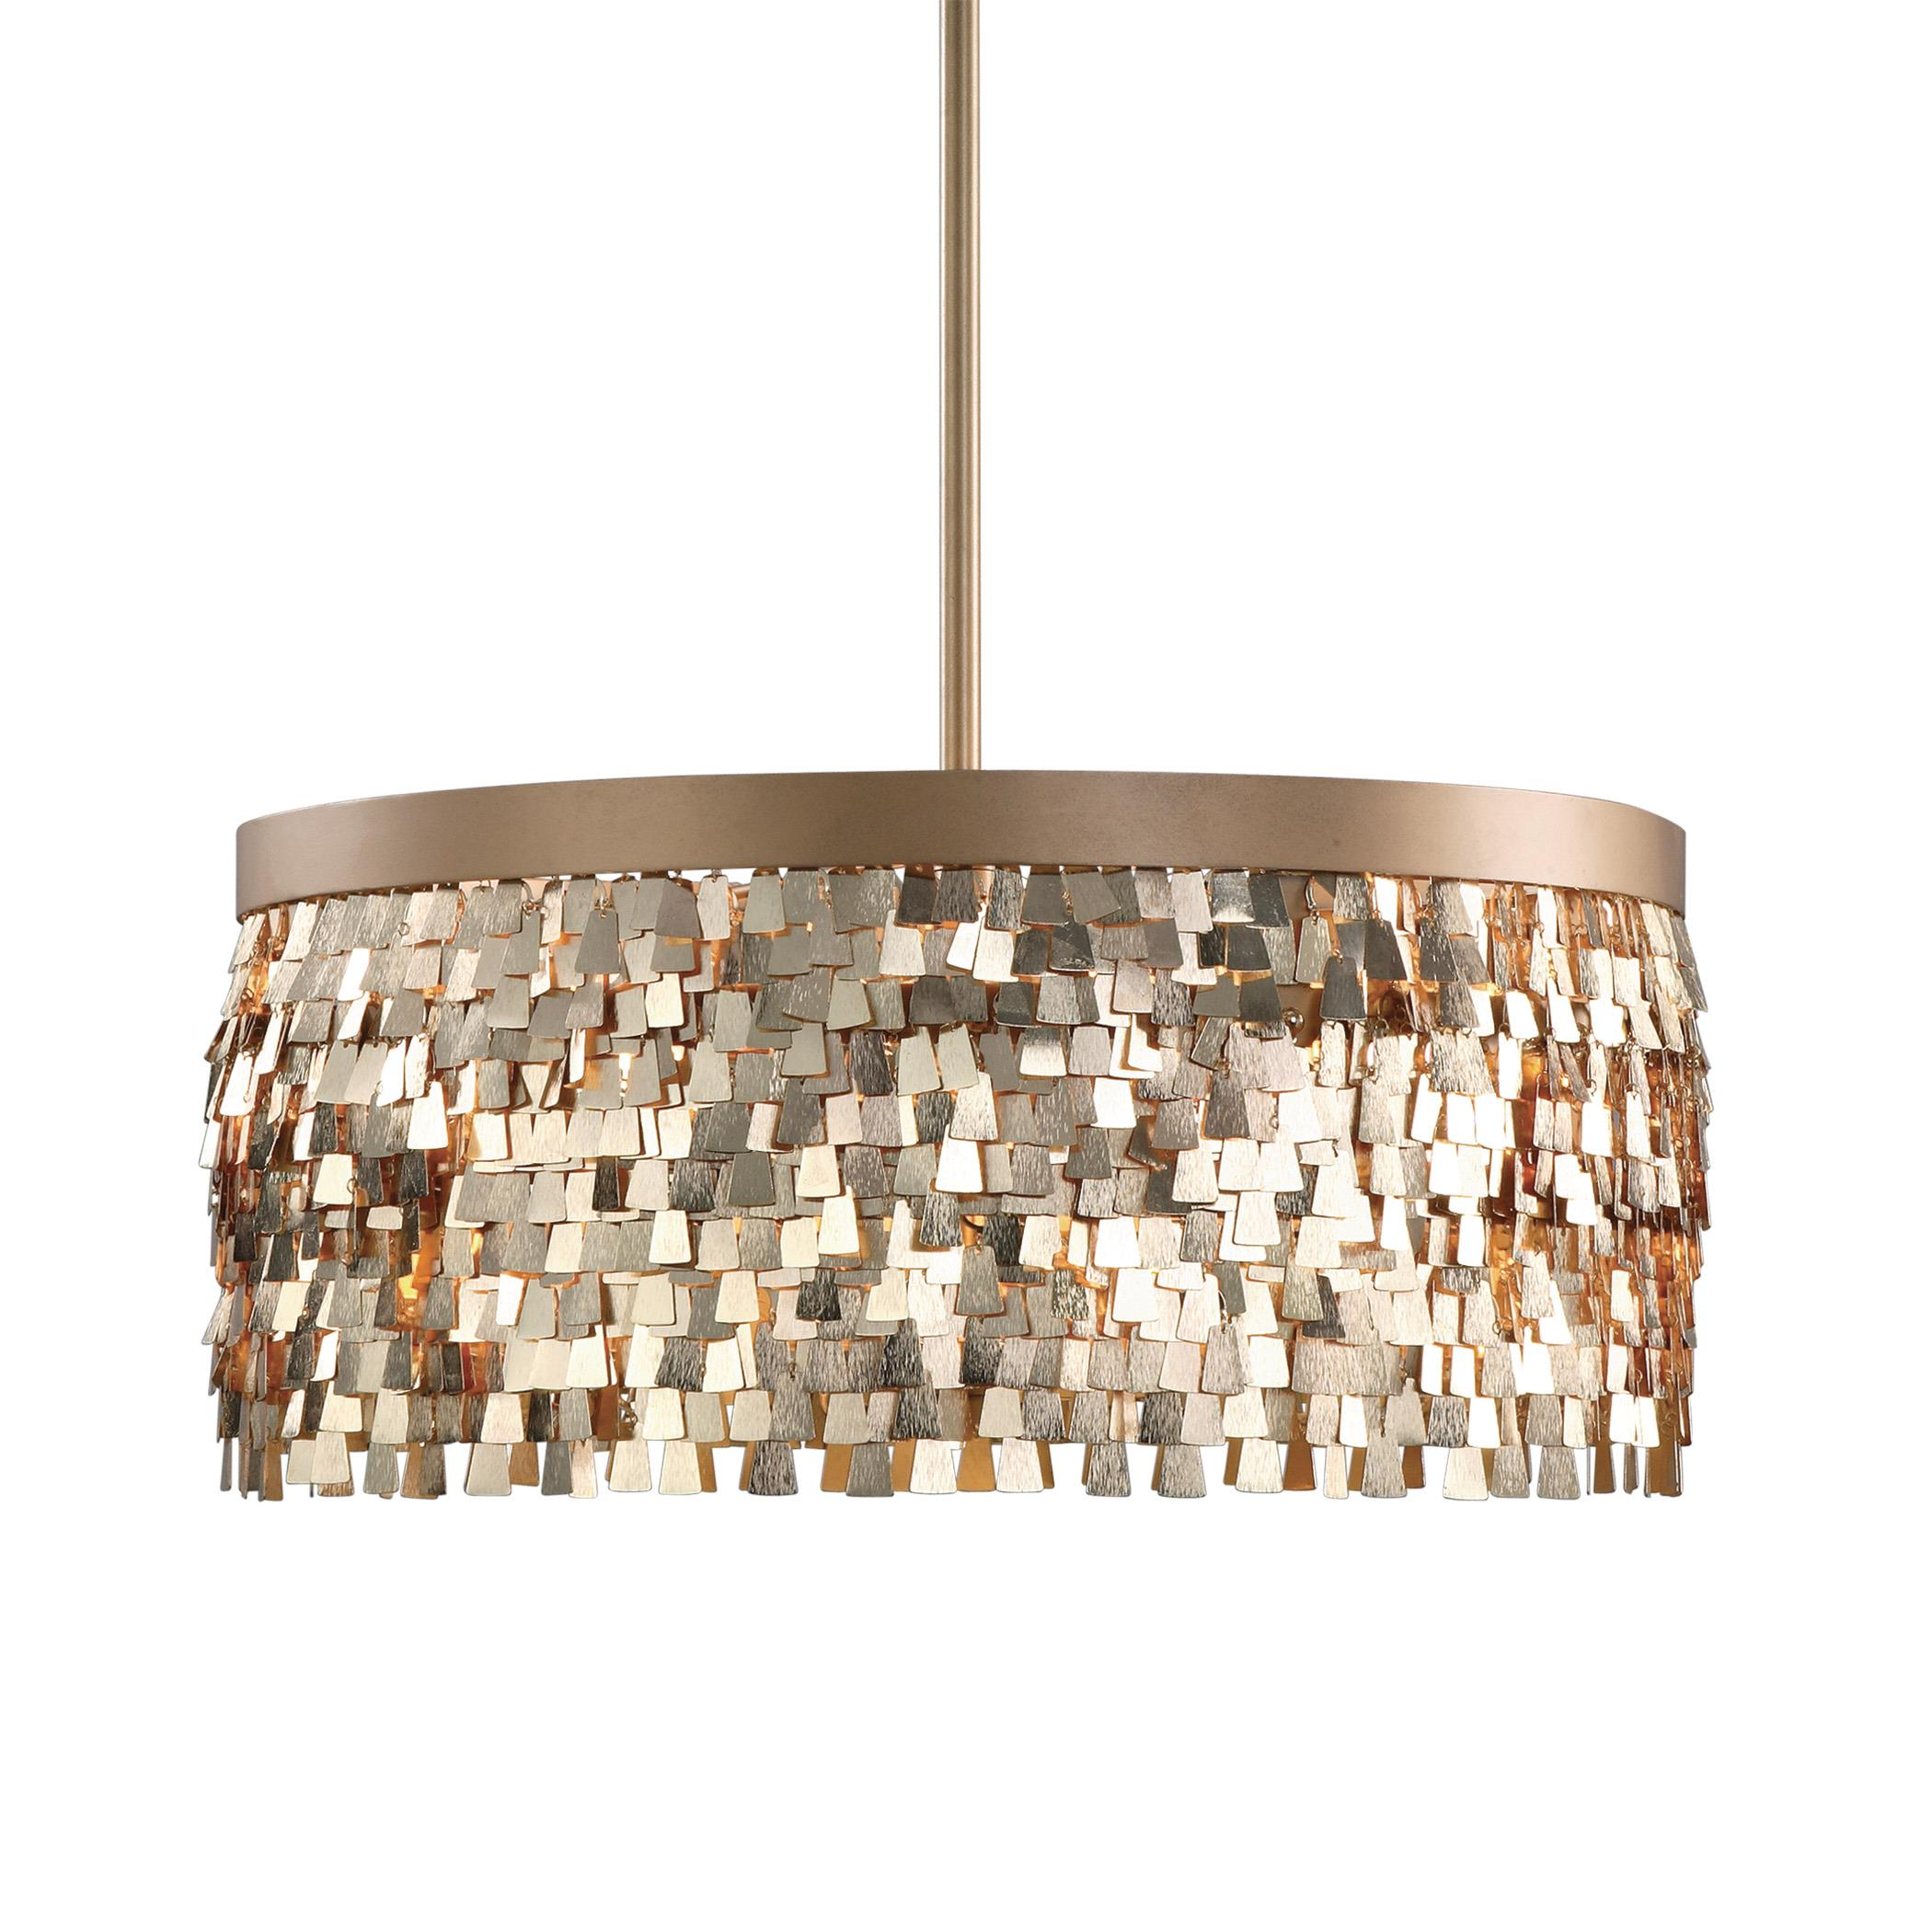 Uttermost Lighting Fixtures Tillie 3 Light Textured Gold Pendant - Item Number: 22064